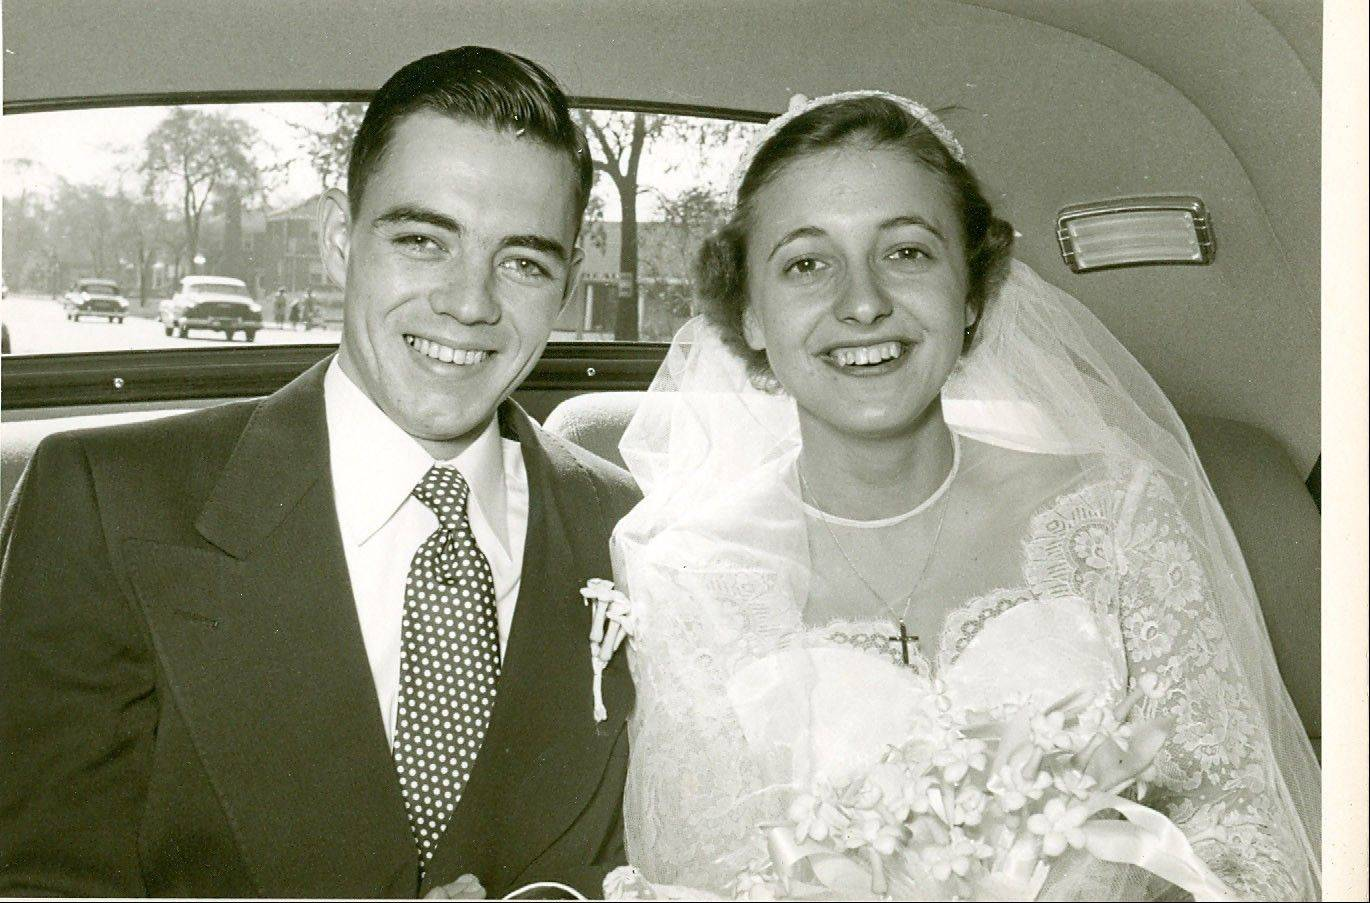 Paul and Audry Girard planned their wedding through letters while Paul served in the Navy.